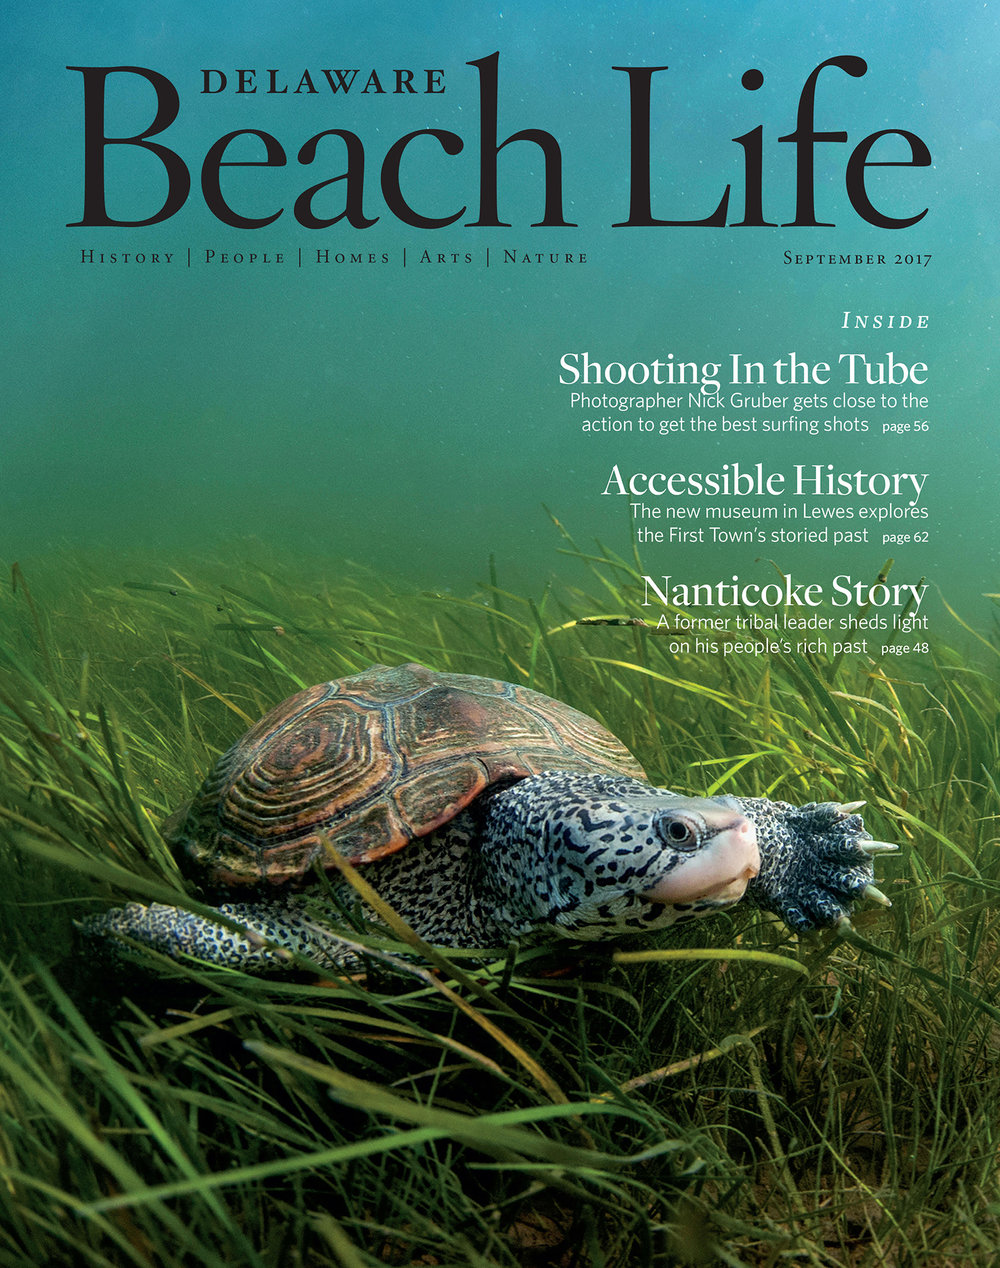 Delaware Beach Life Cover - September 2017.jpg